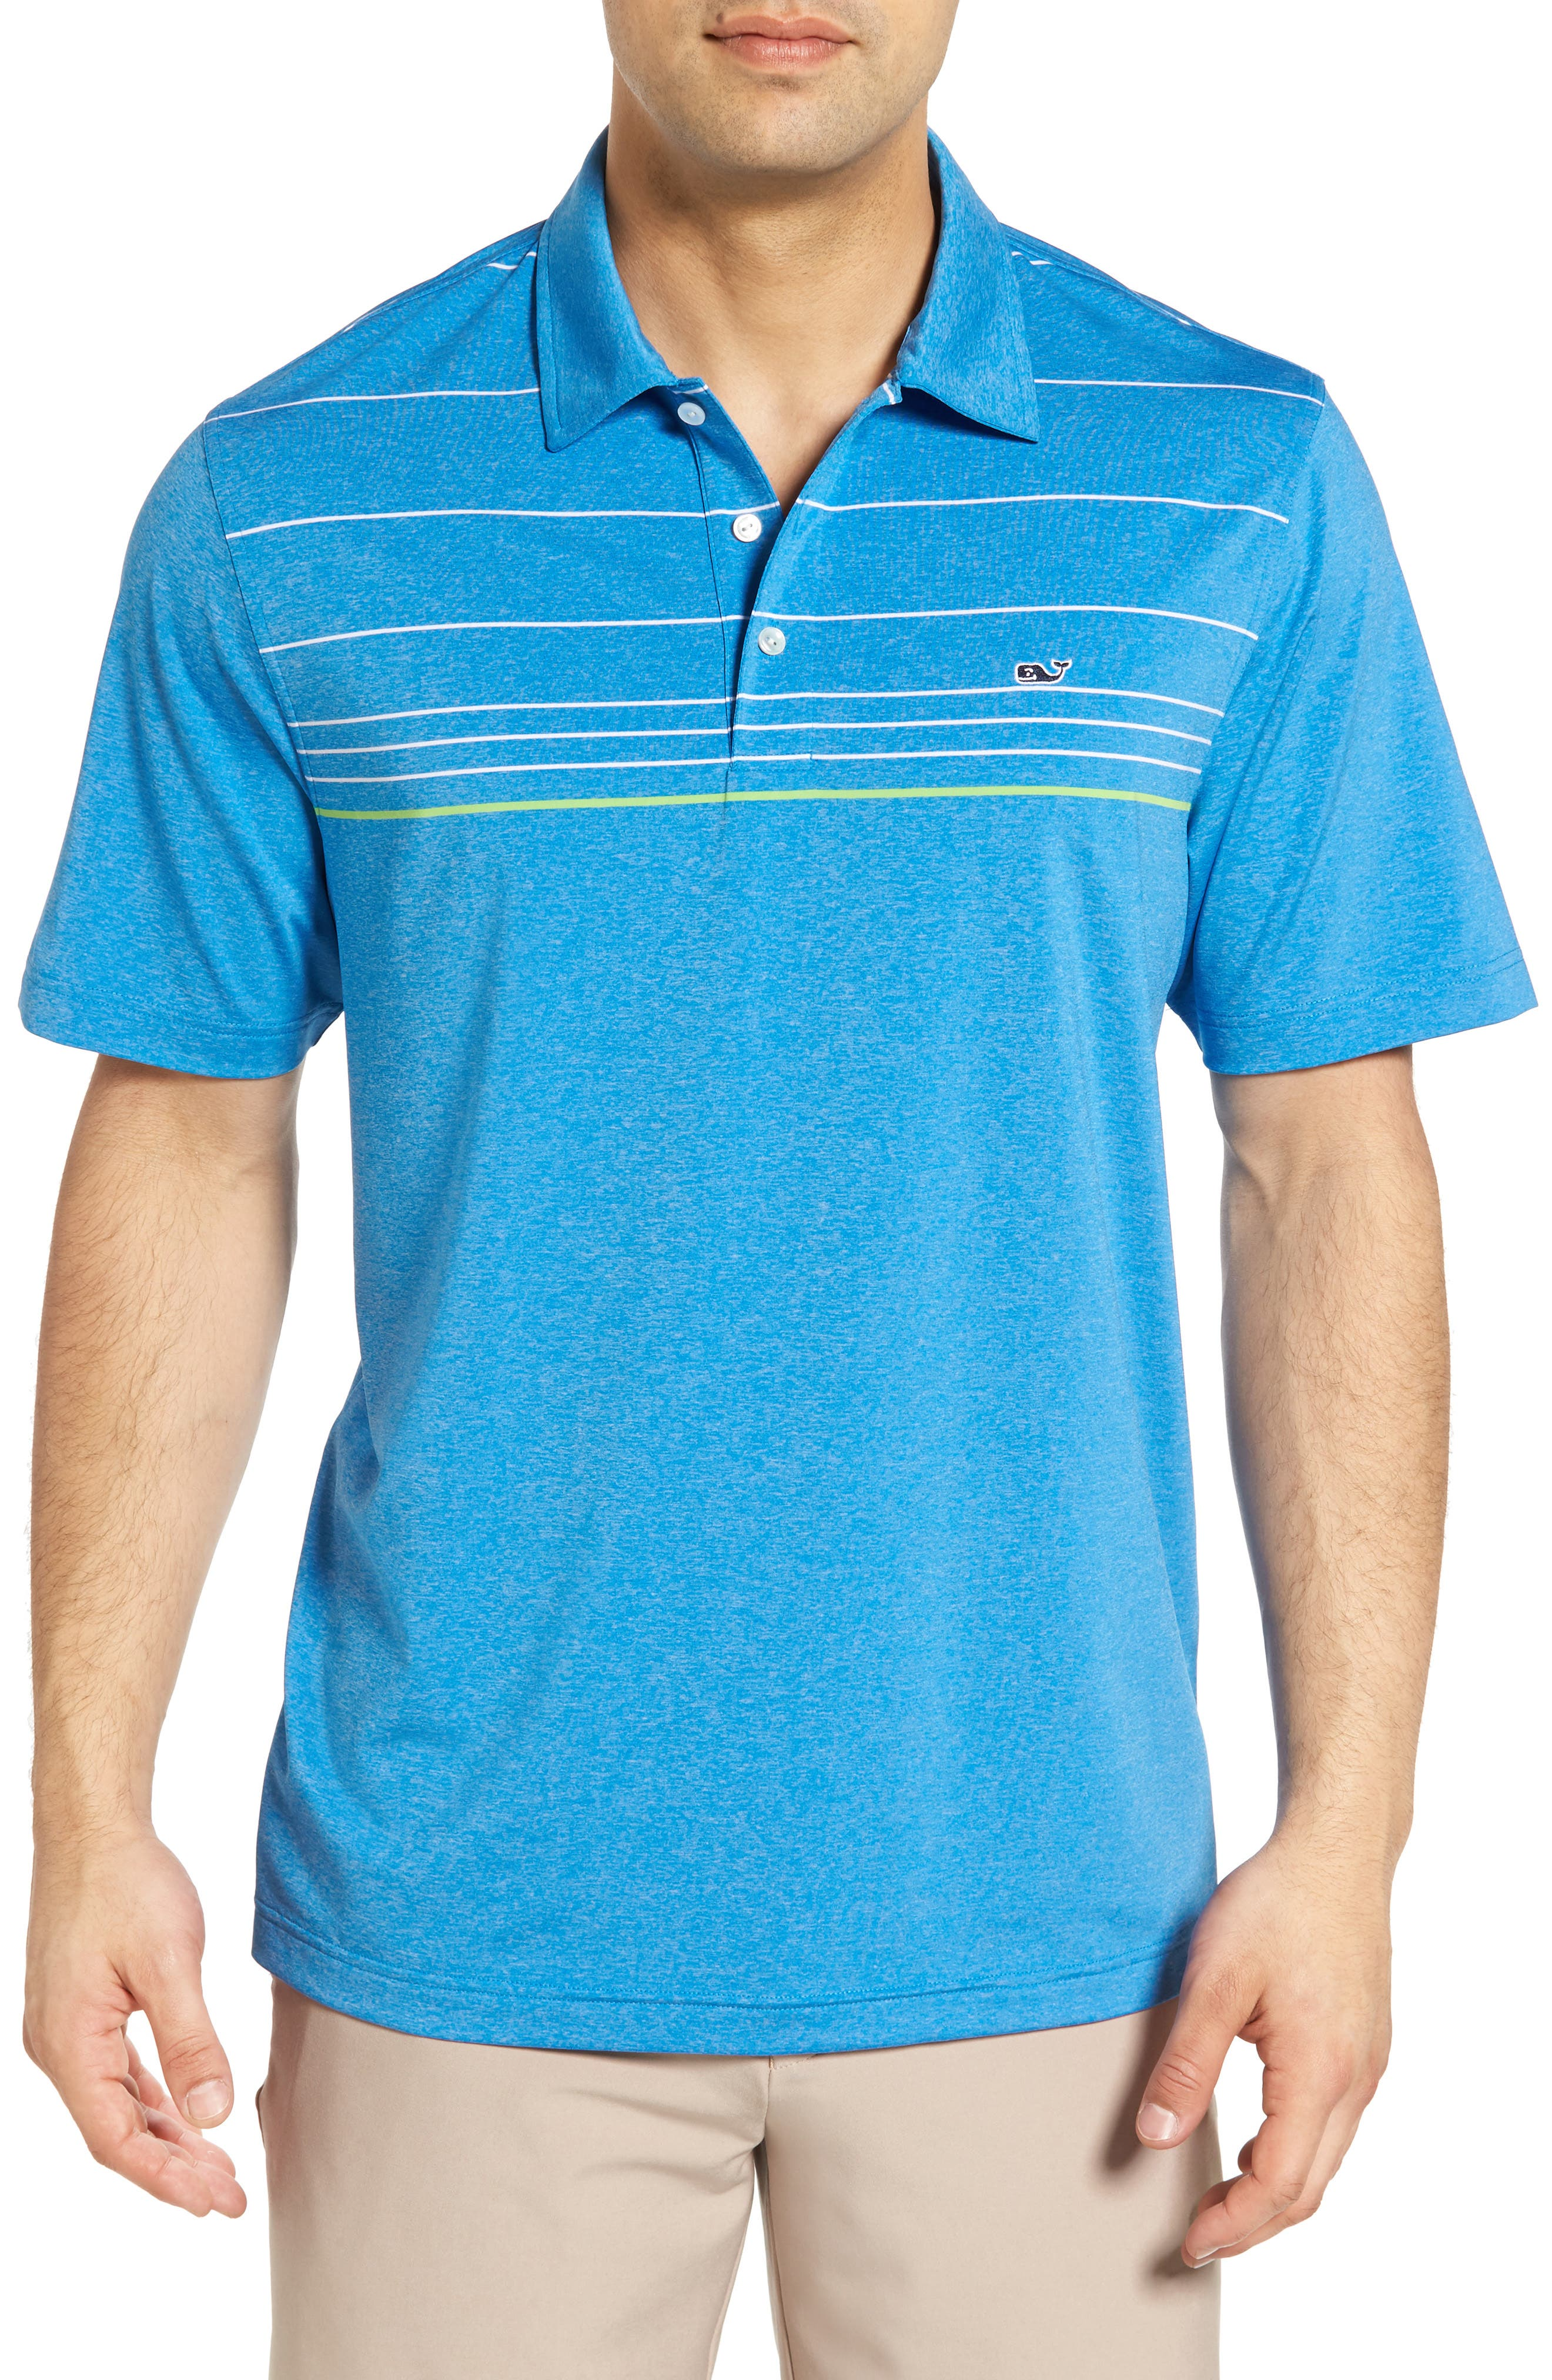 Vineyard Vines Simsbury Stripe Performance Polo